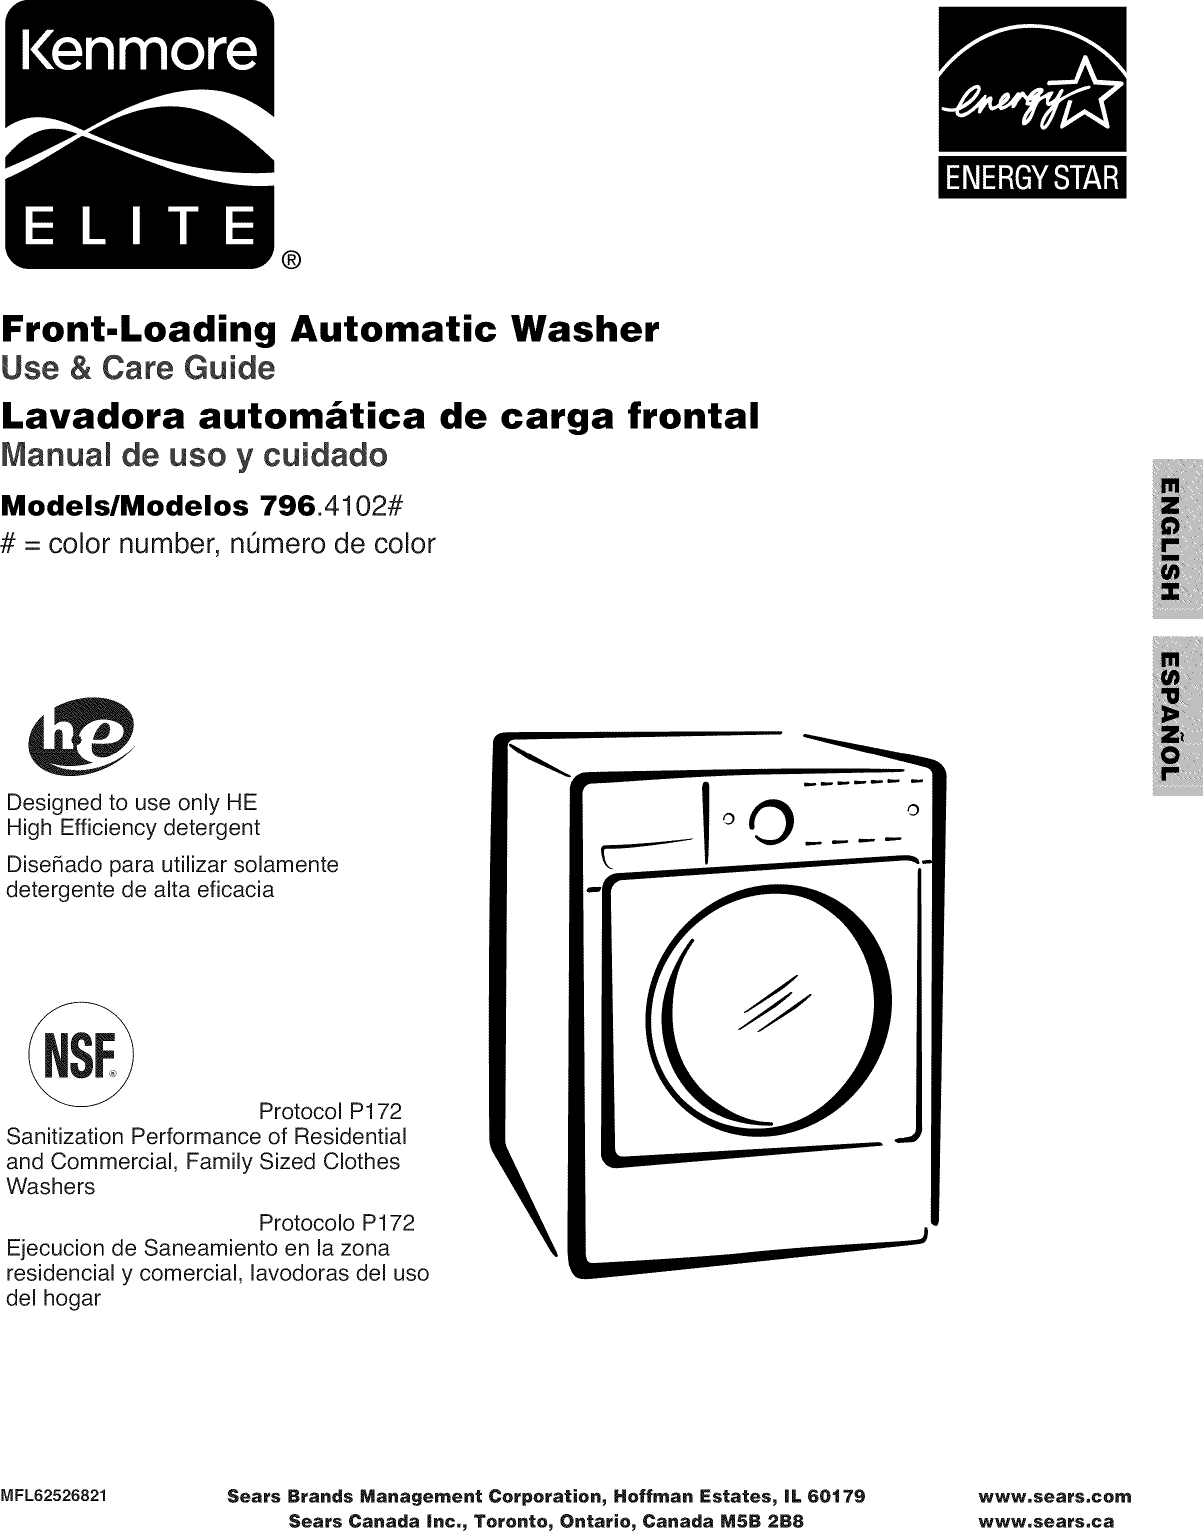 Kenmore Elite 79641022900 User Manual WASHER Manuals And